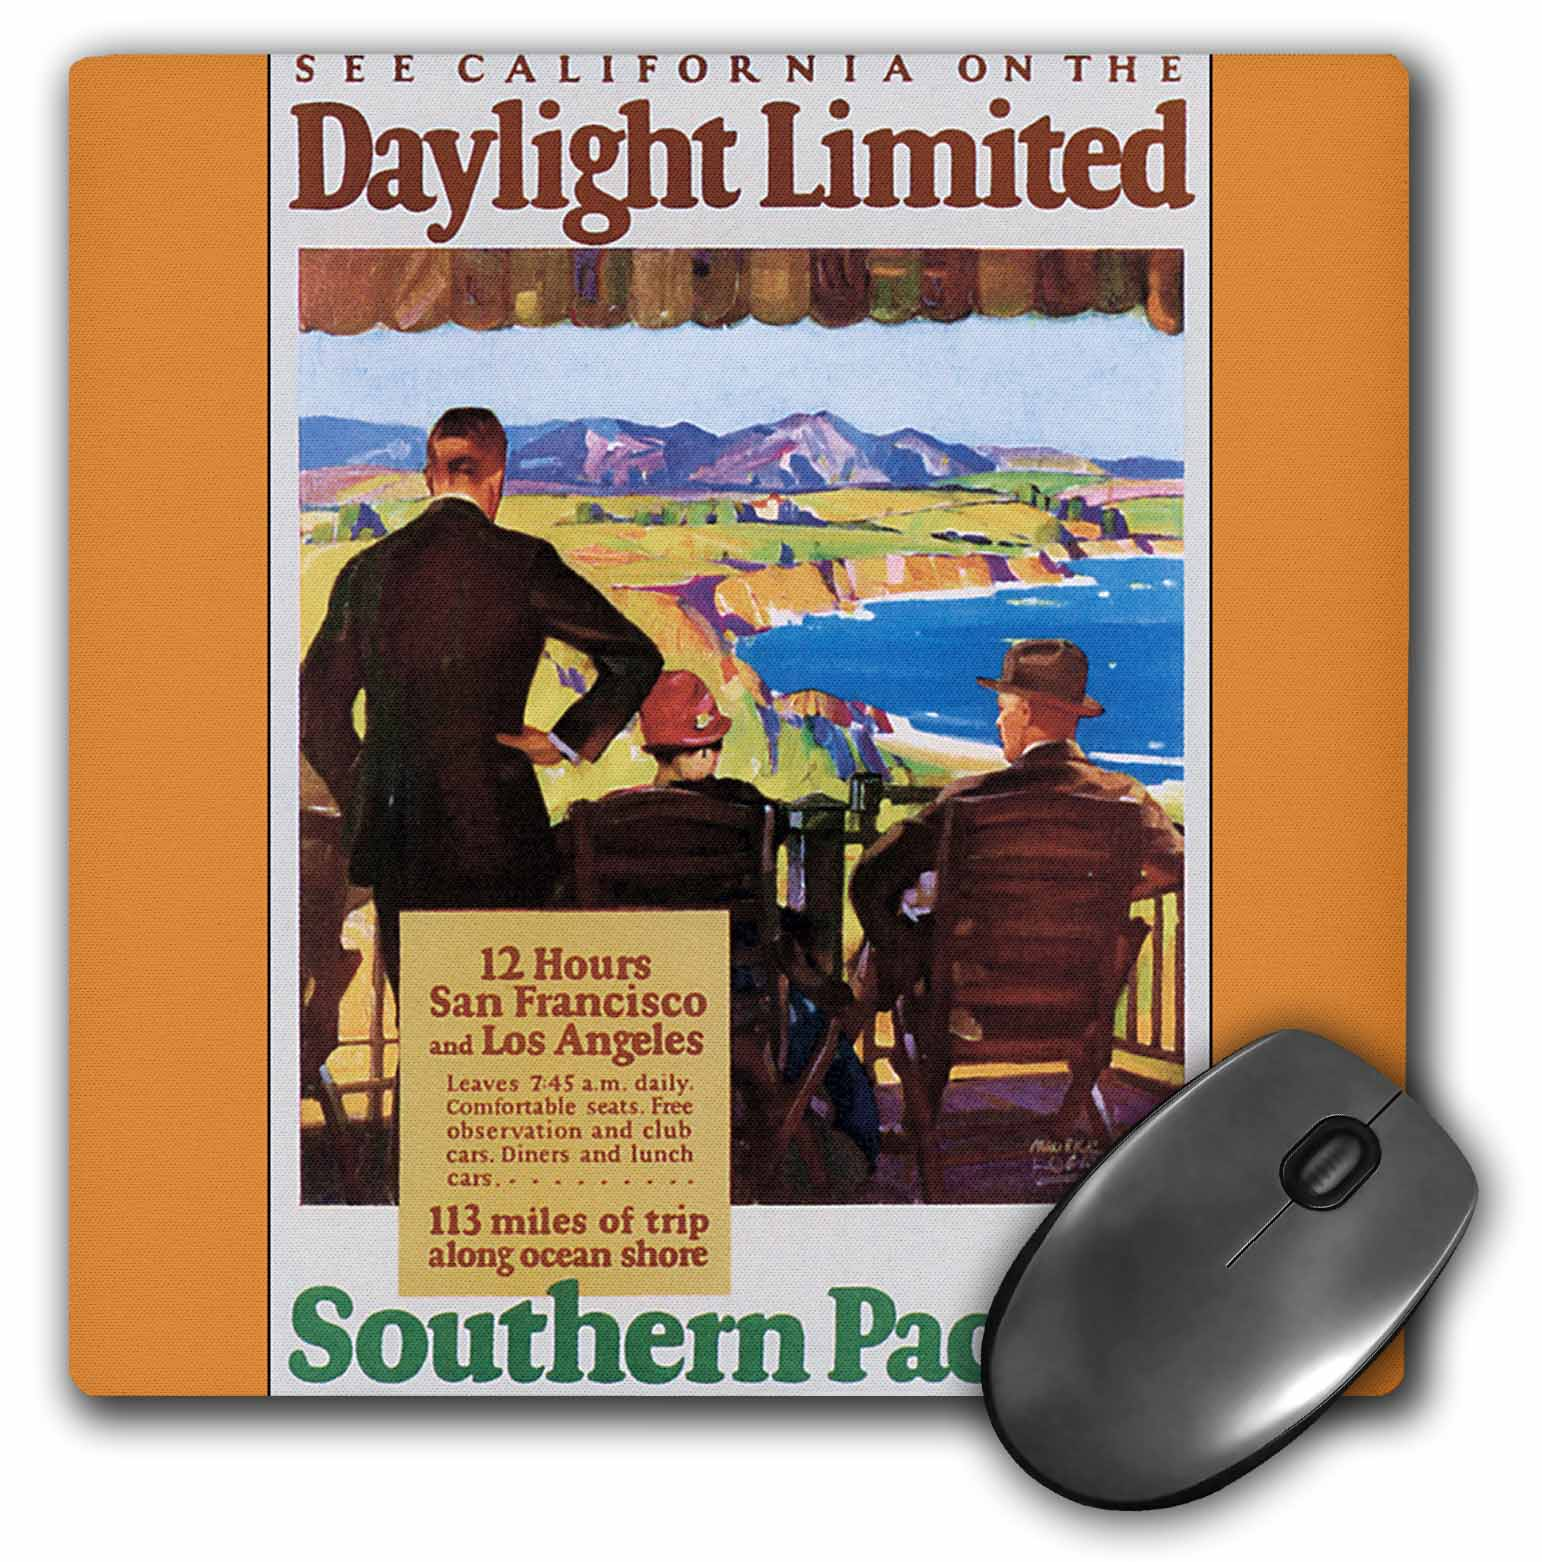 3dRose See California Southern Pacific Railroad Vintage Travel Poster, Mouse Pad, 8 by 8 inches